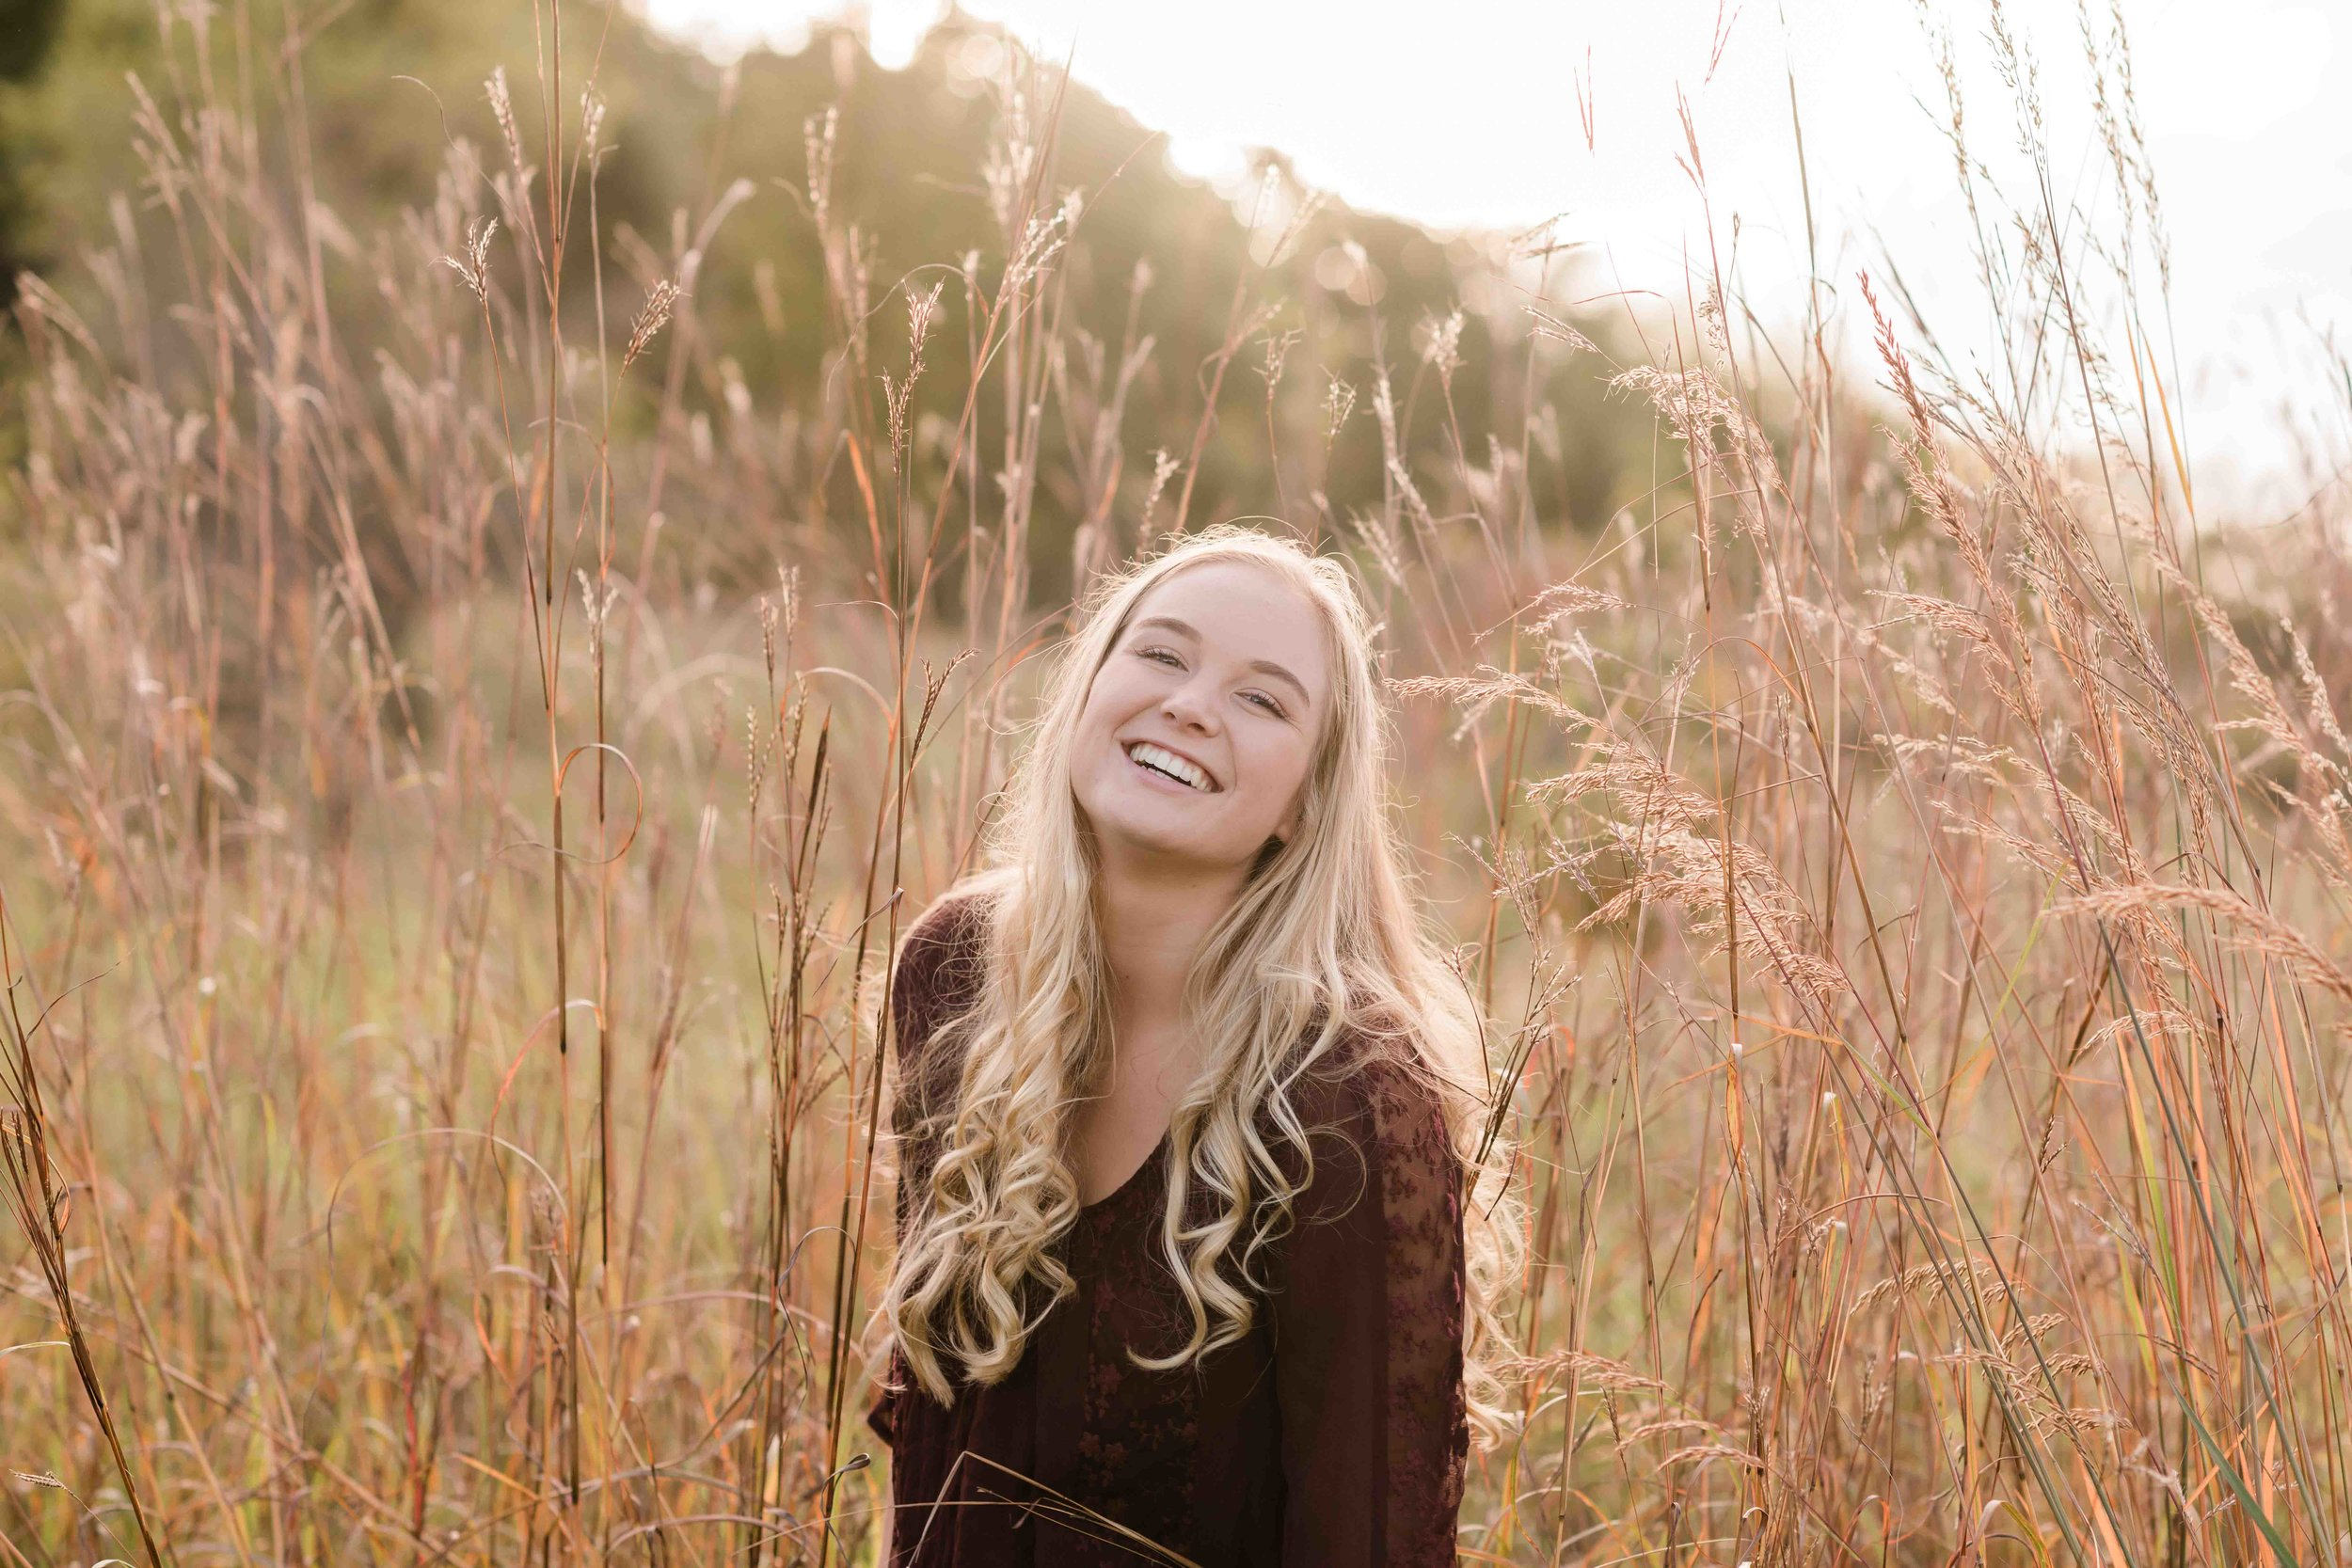 High school senior smiling in a field